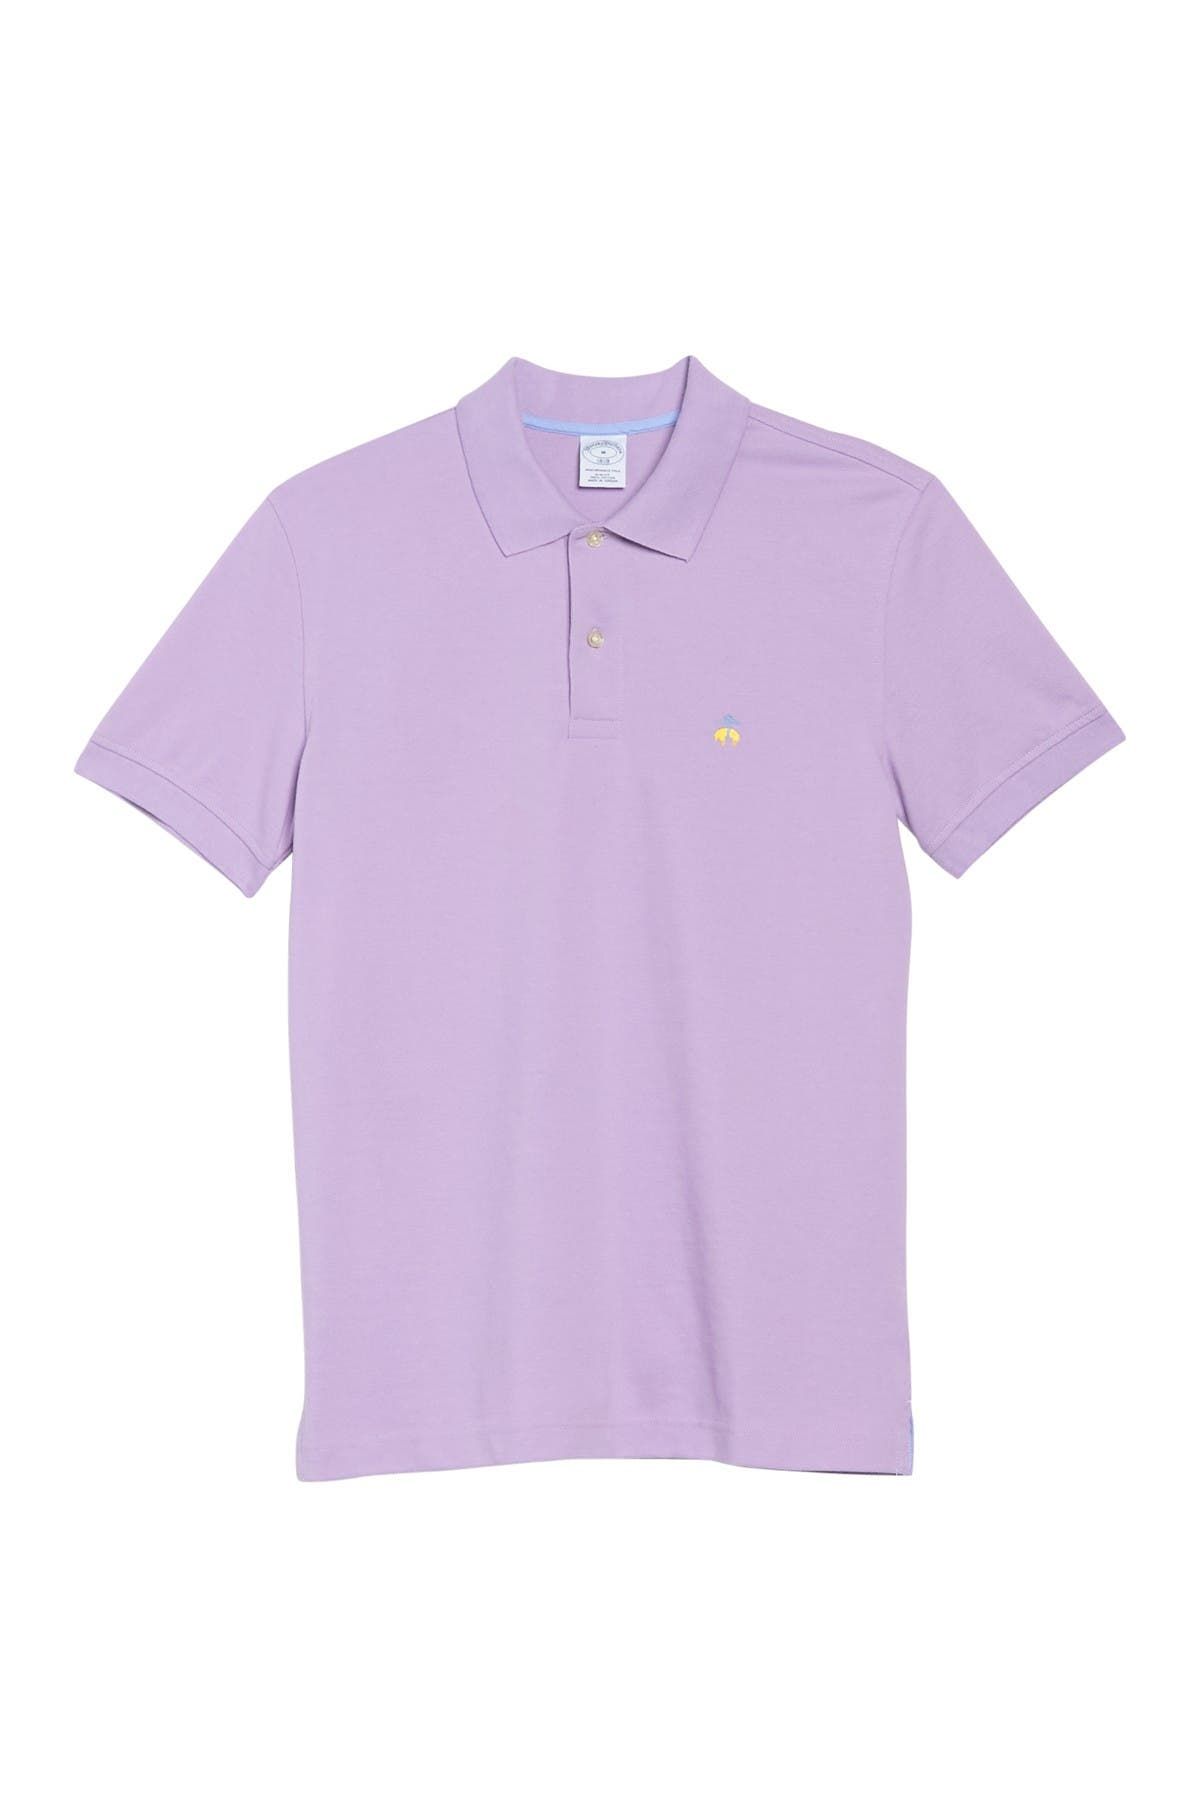 Image of Brooks Brothers Solid Pique Polo